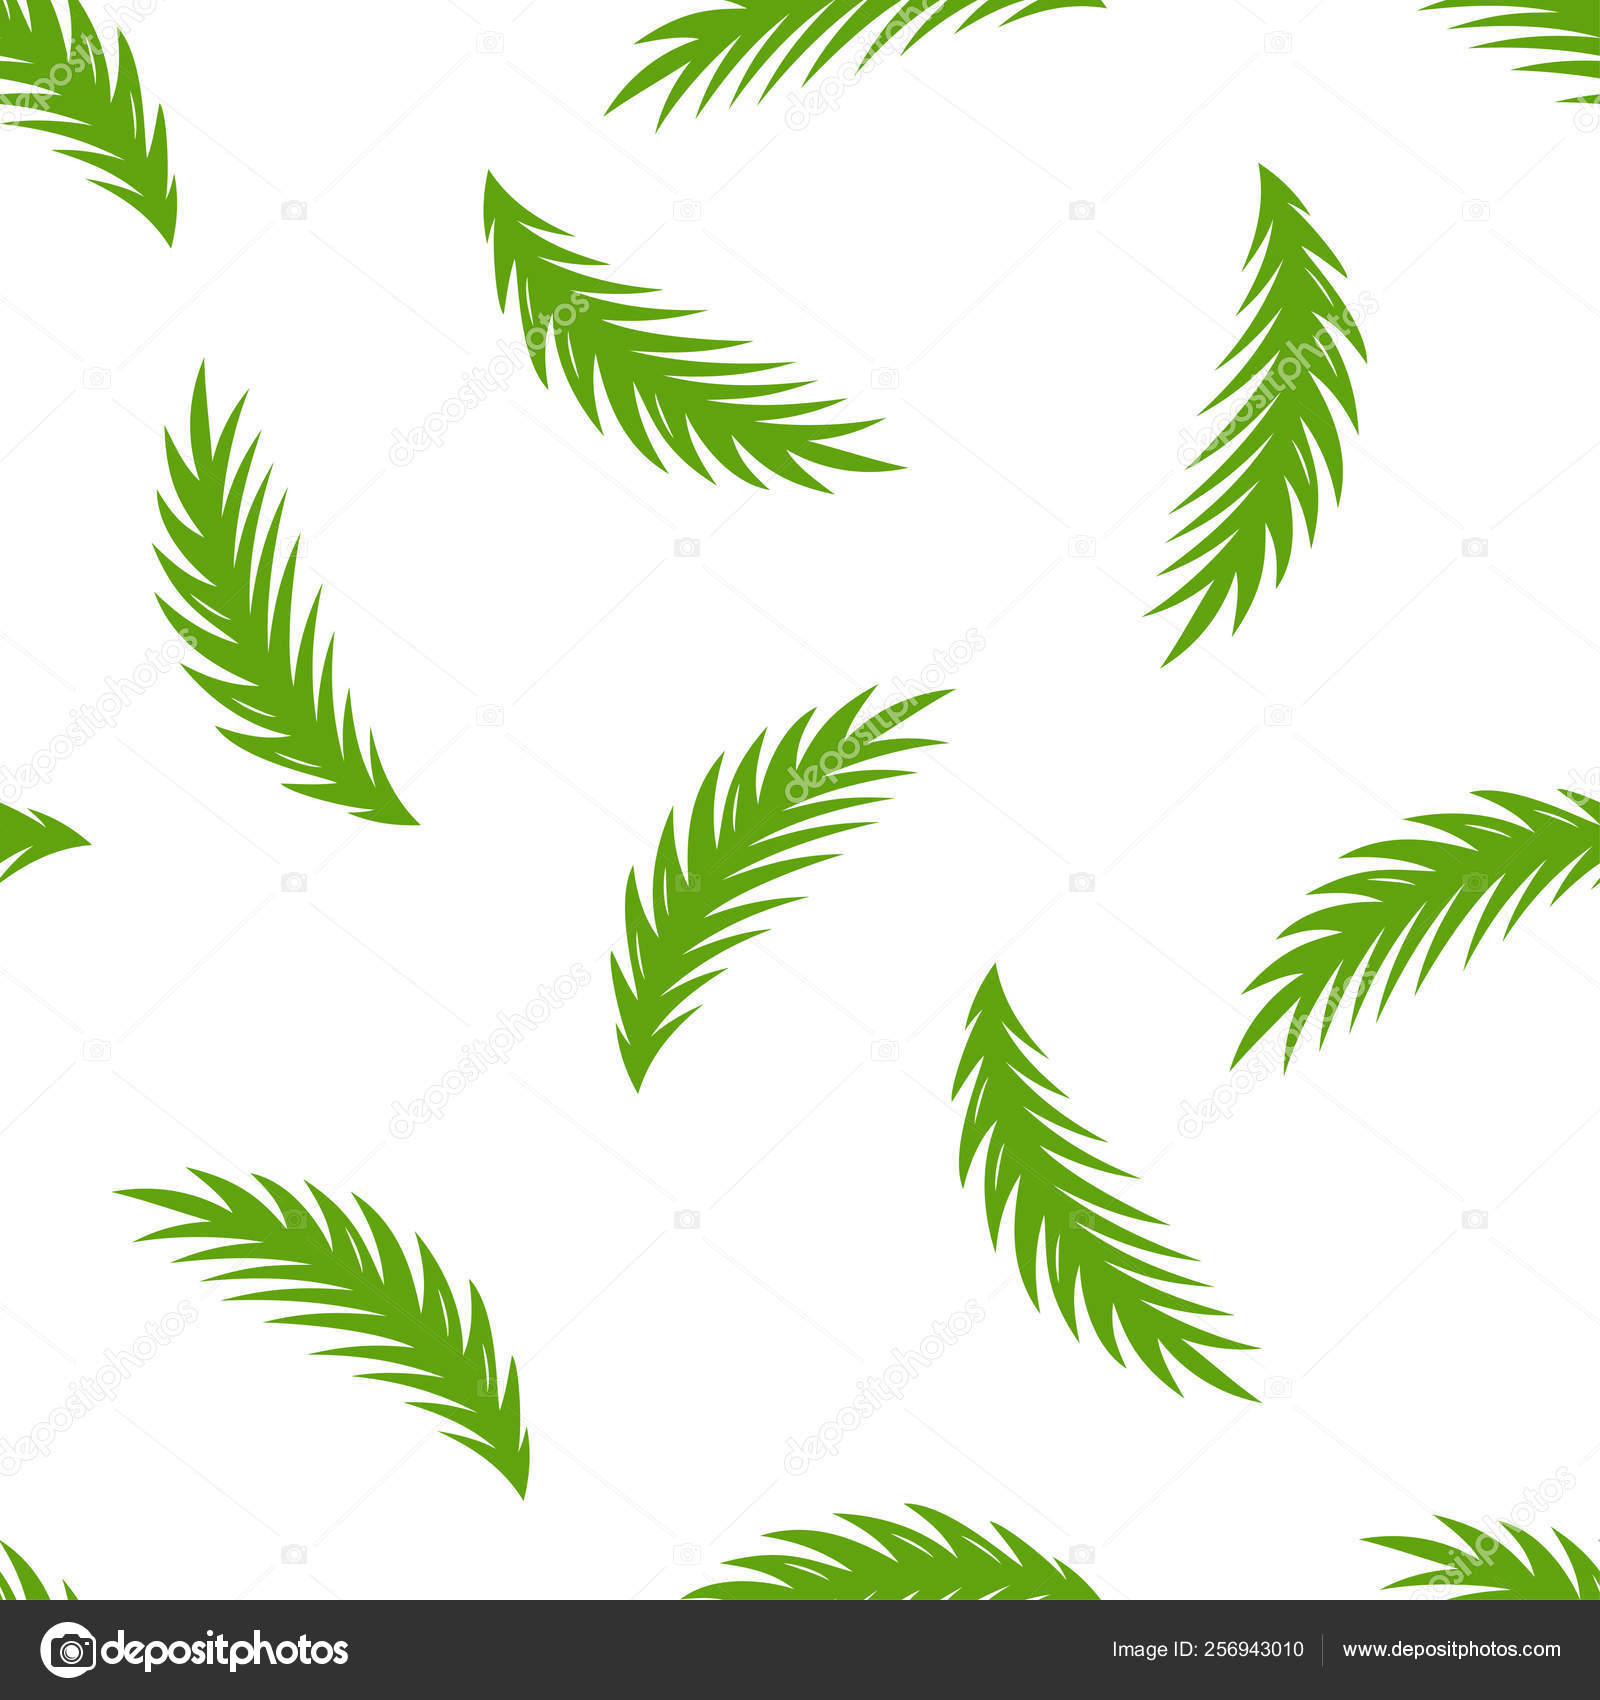 Cartoon Palm Leaf Pattern векторное изображение Makc76